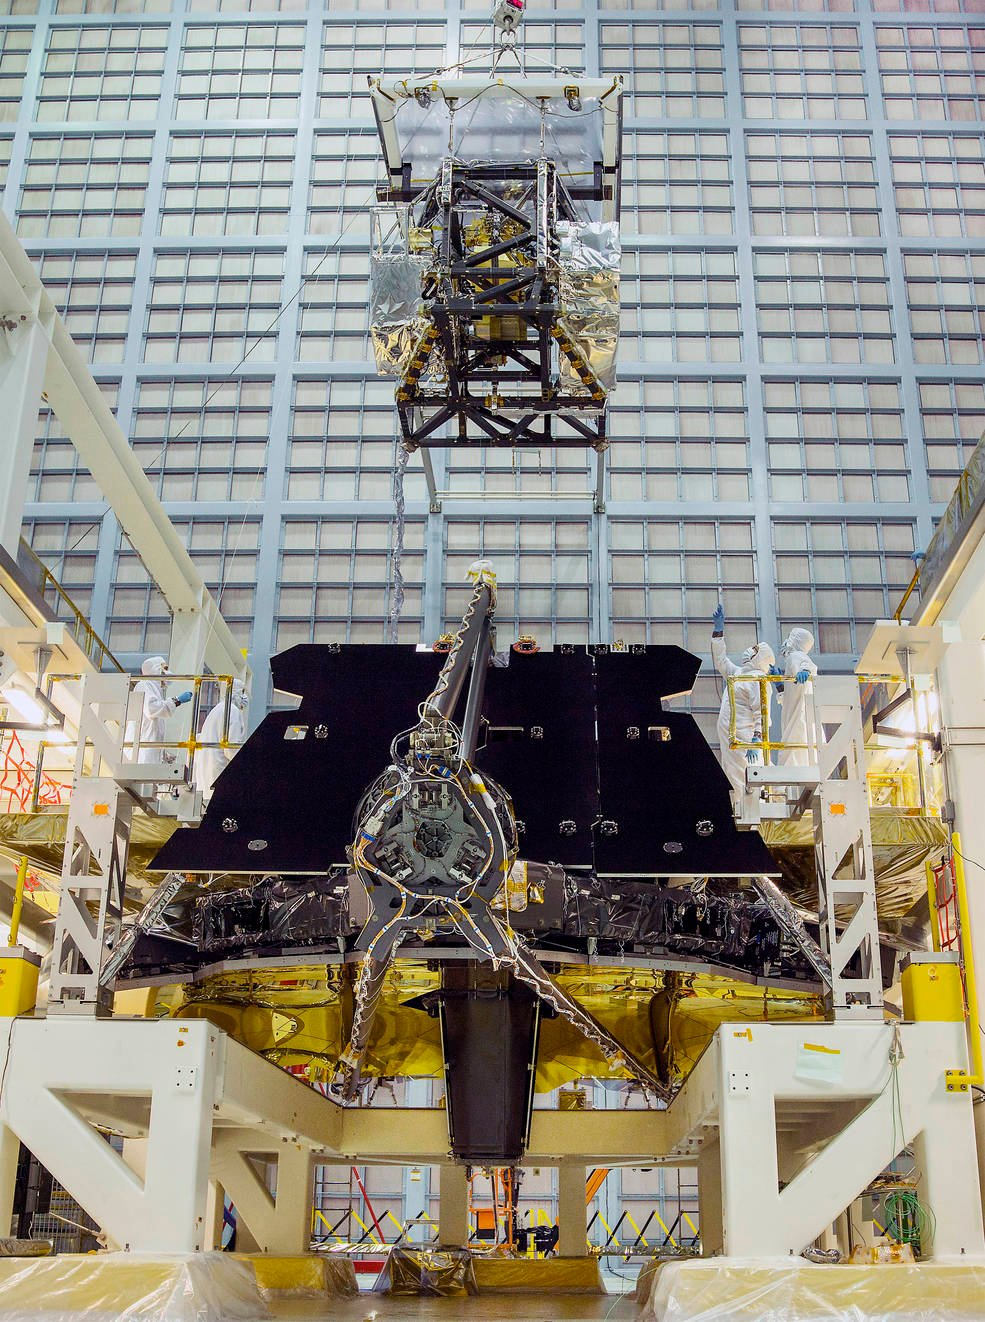 In this rare view, the James Webb Space Telescope team crane lifted the science instrument package for installation into the telescope structure. Credits: NASA/Chris Gunn